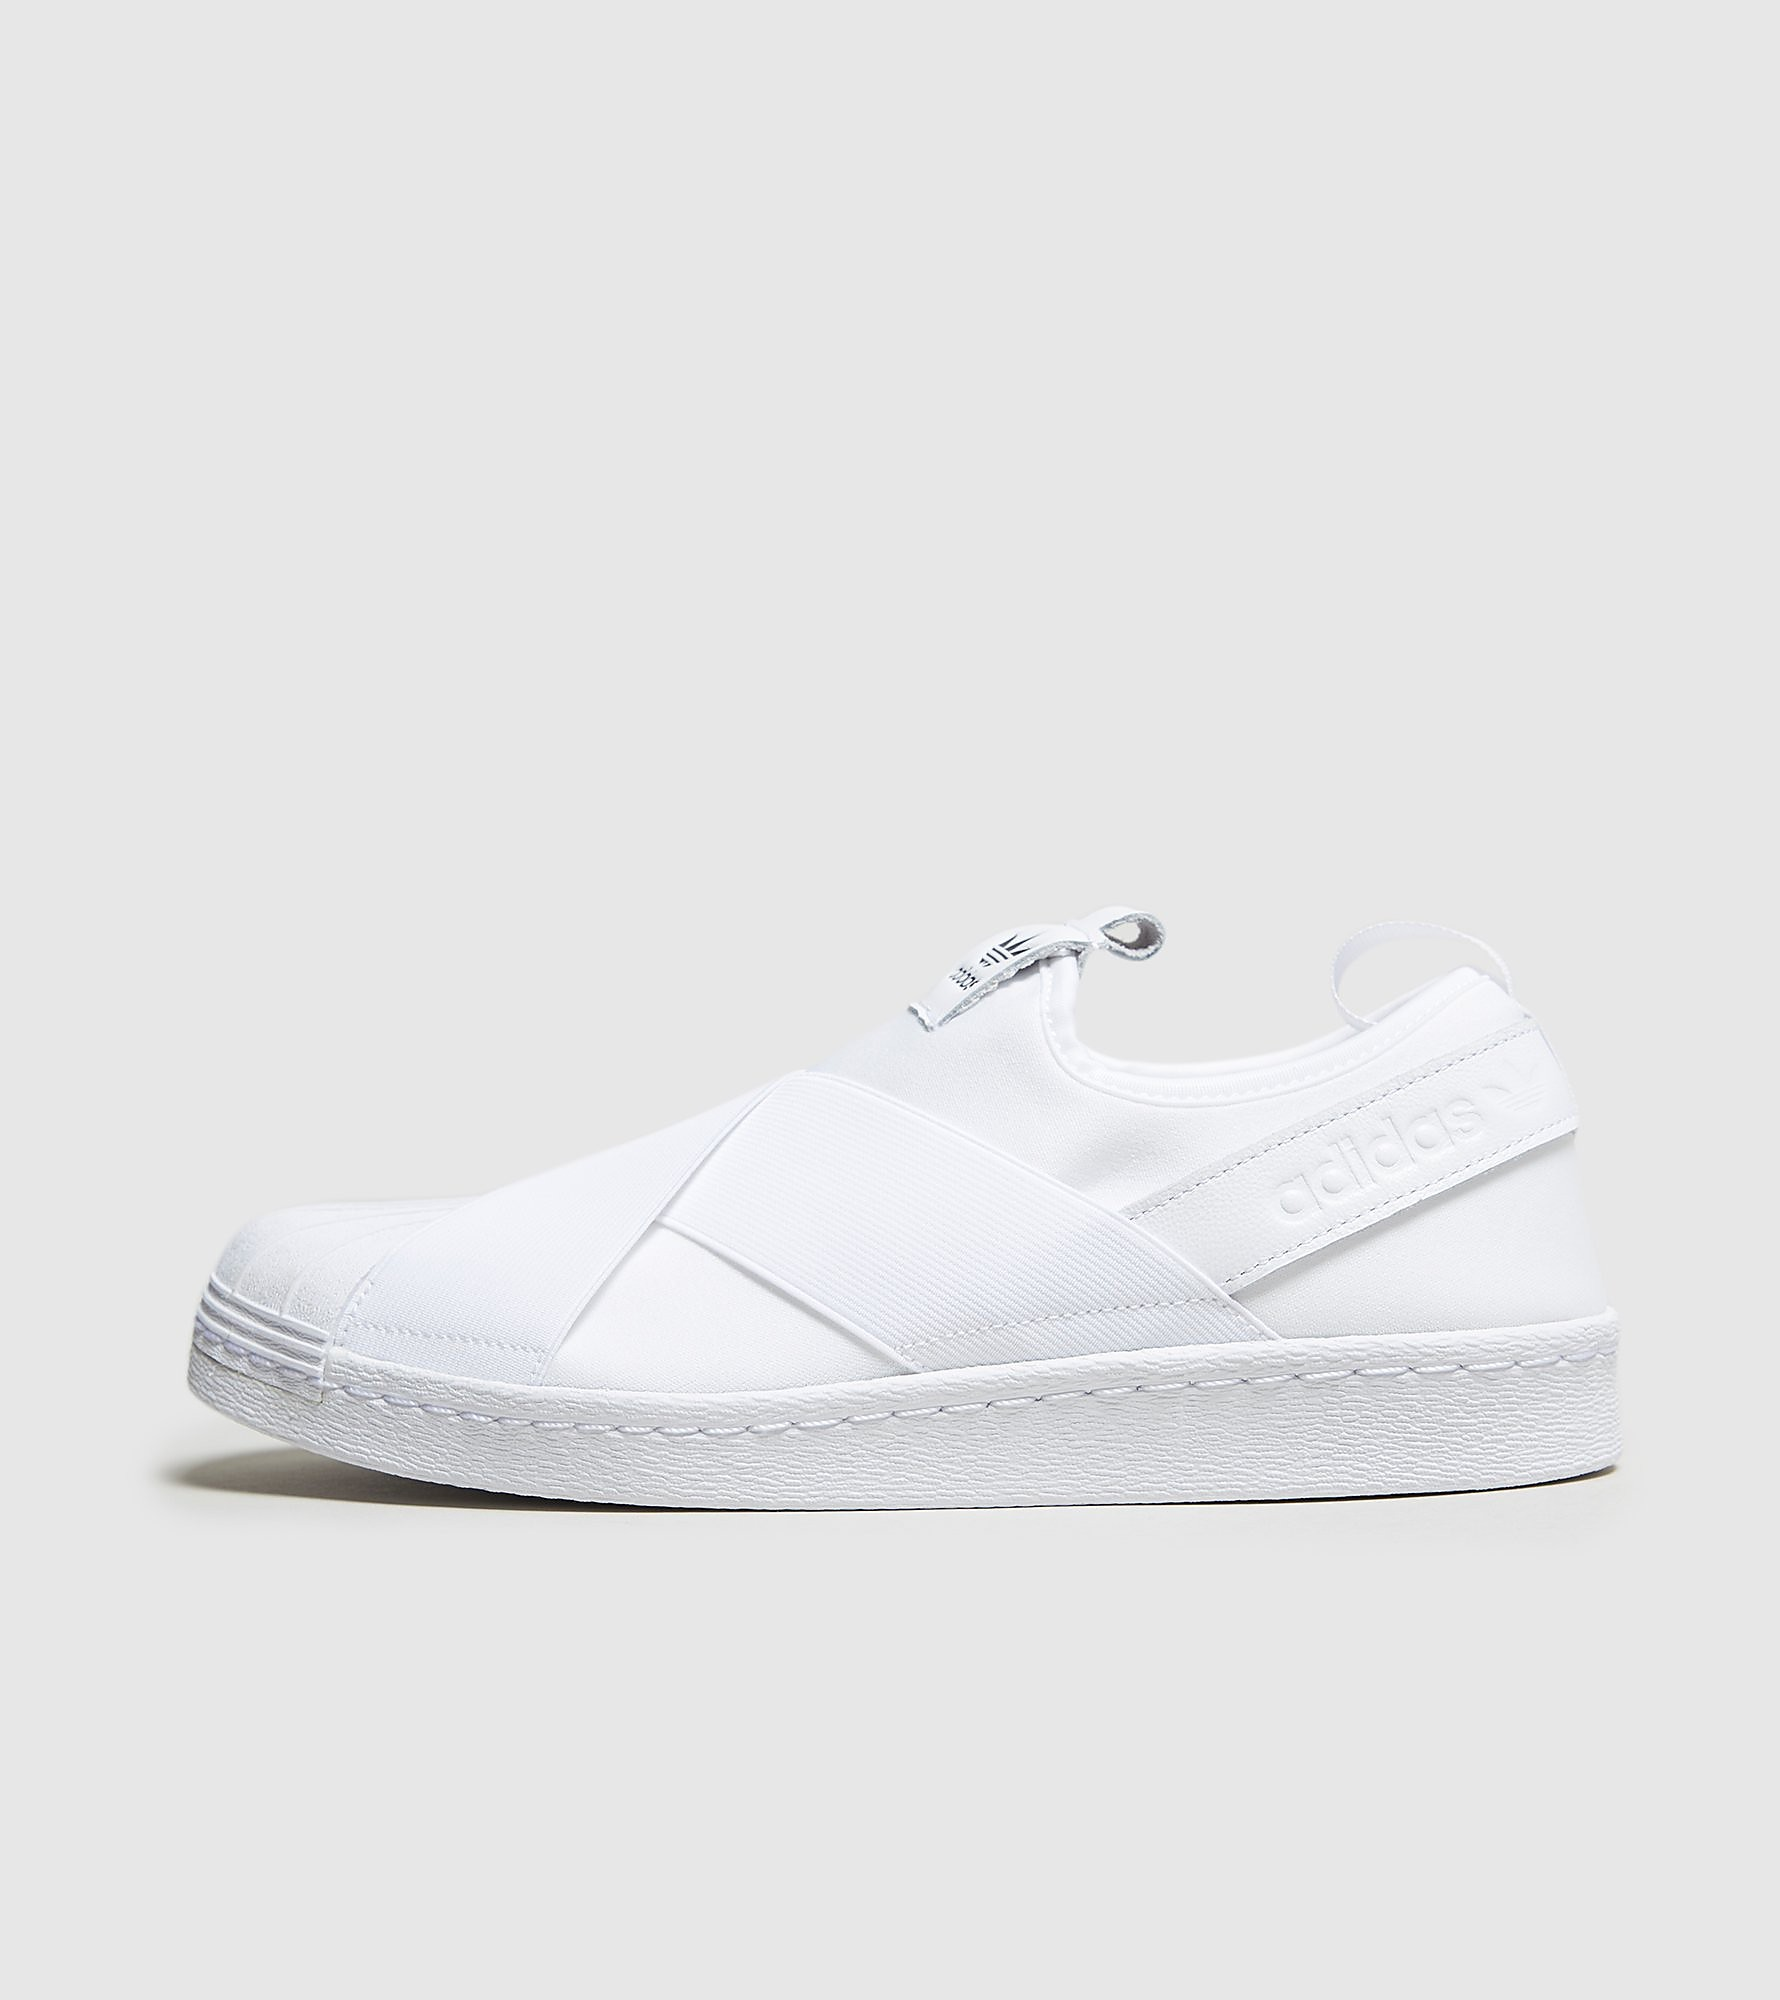 adidas Originals Superstar Slip-On